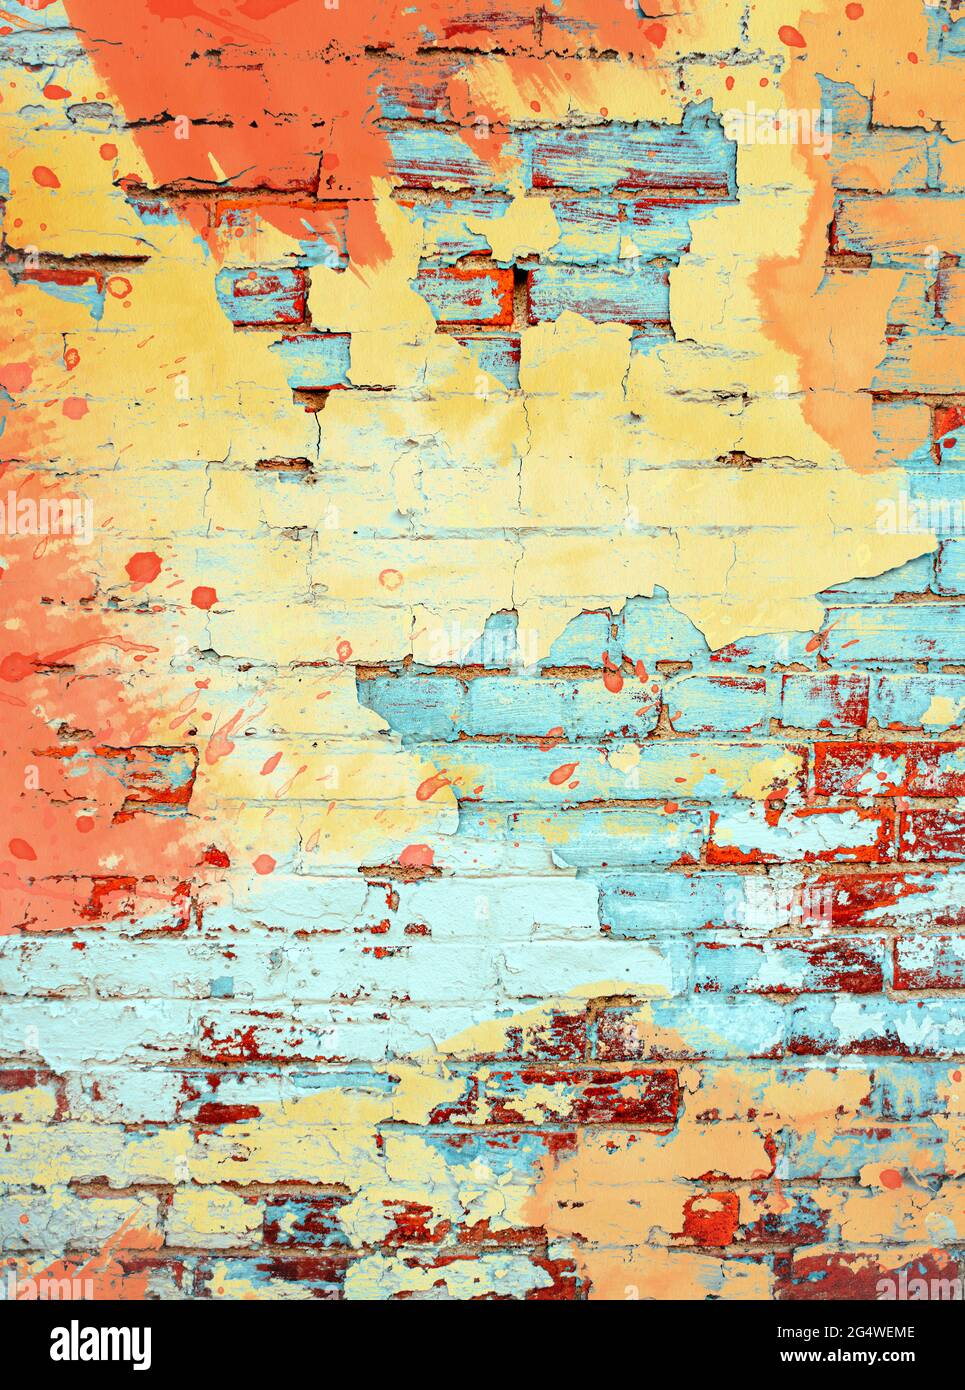 Brightly colored orange yellow and aqua turquoise paint splatter digital painting on brick wall background texture with empty space as a grunge retro Stock Photo